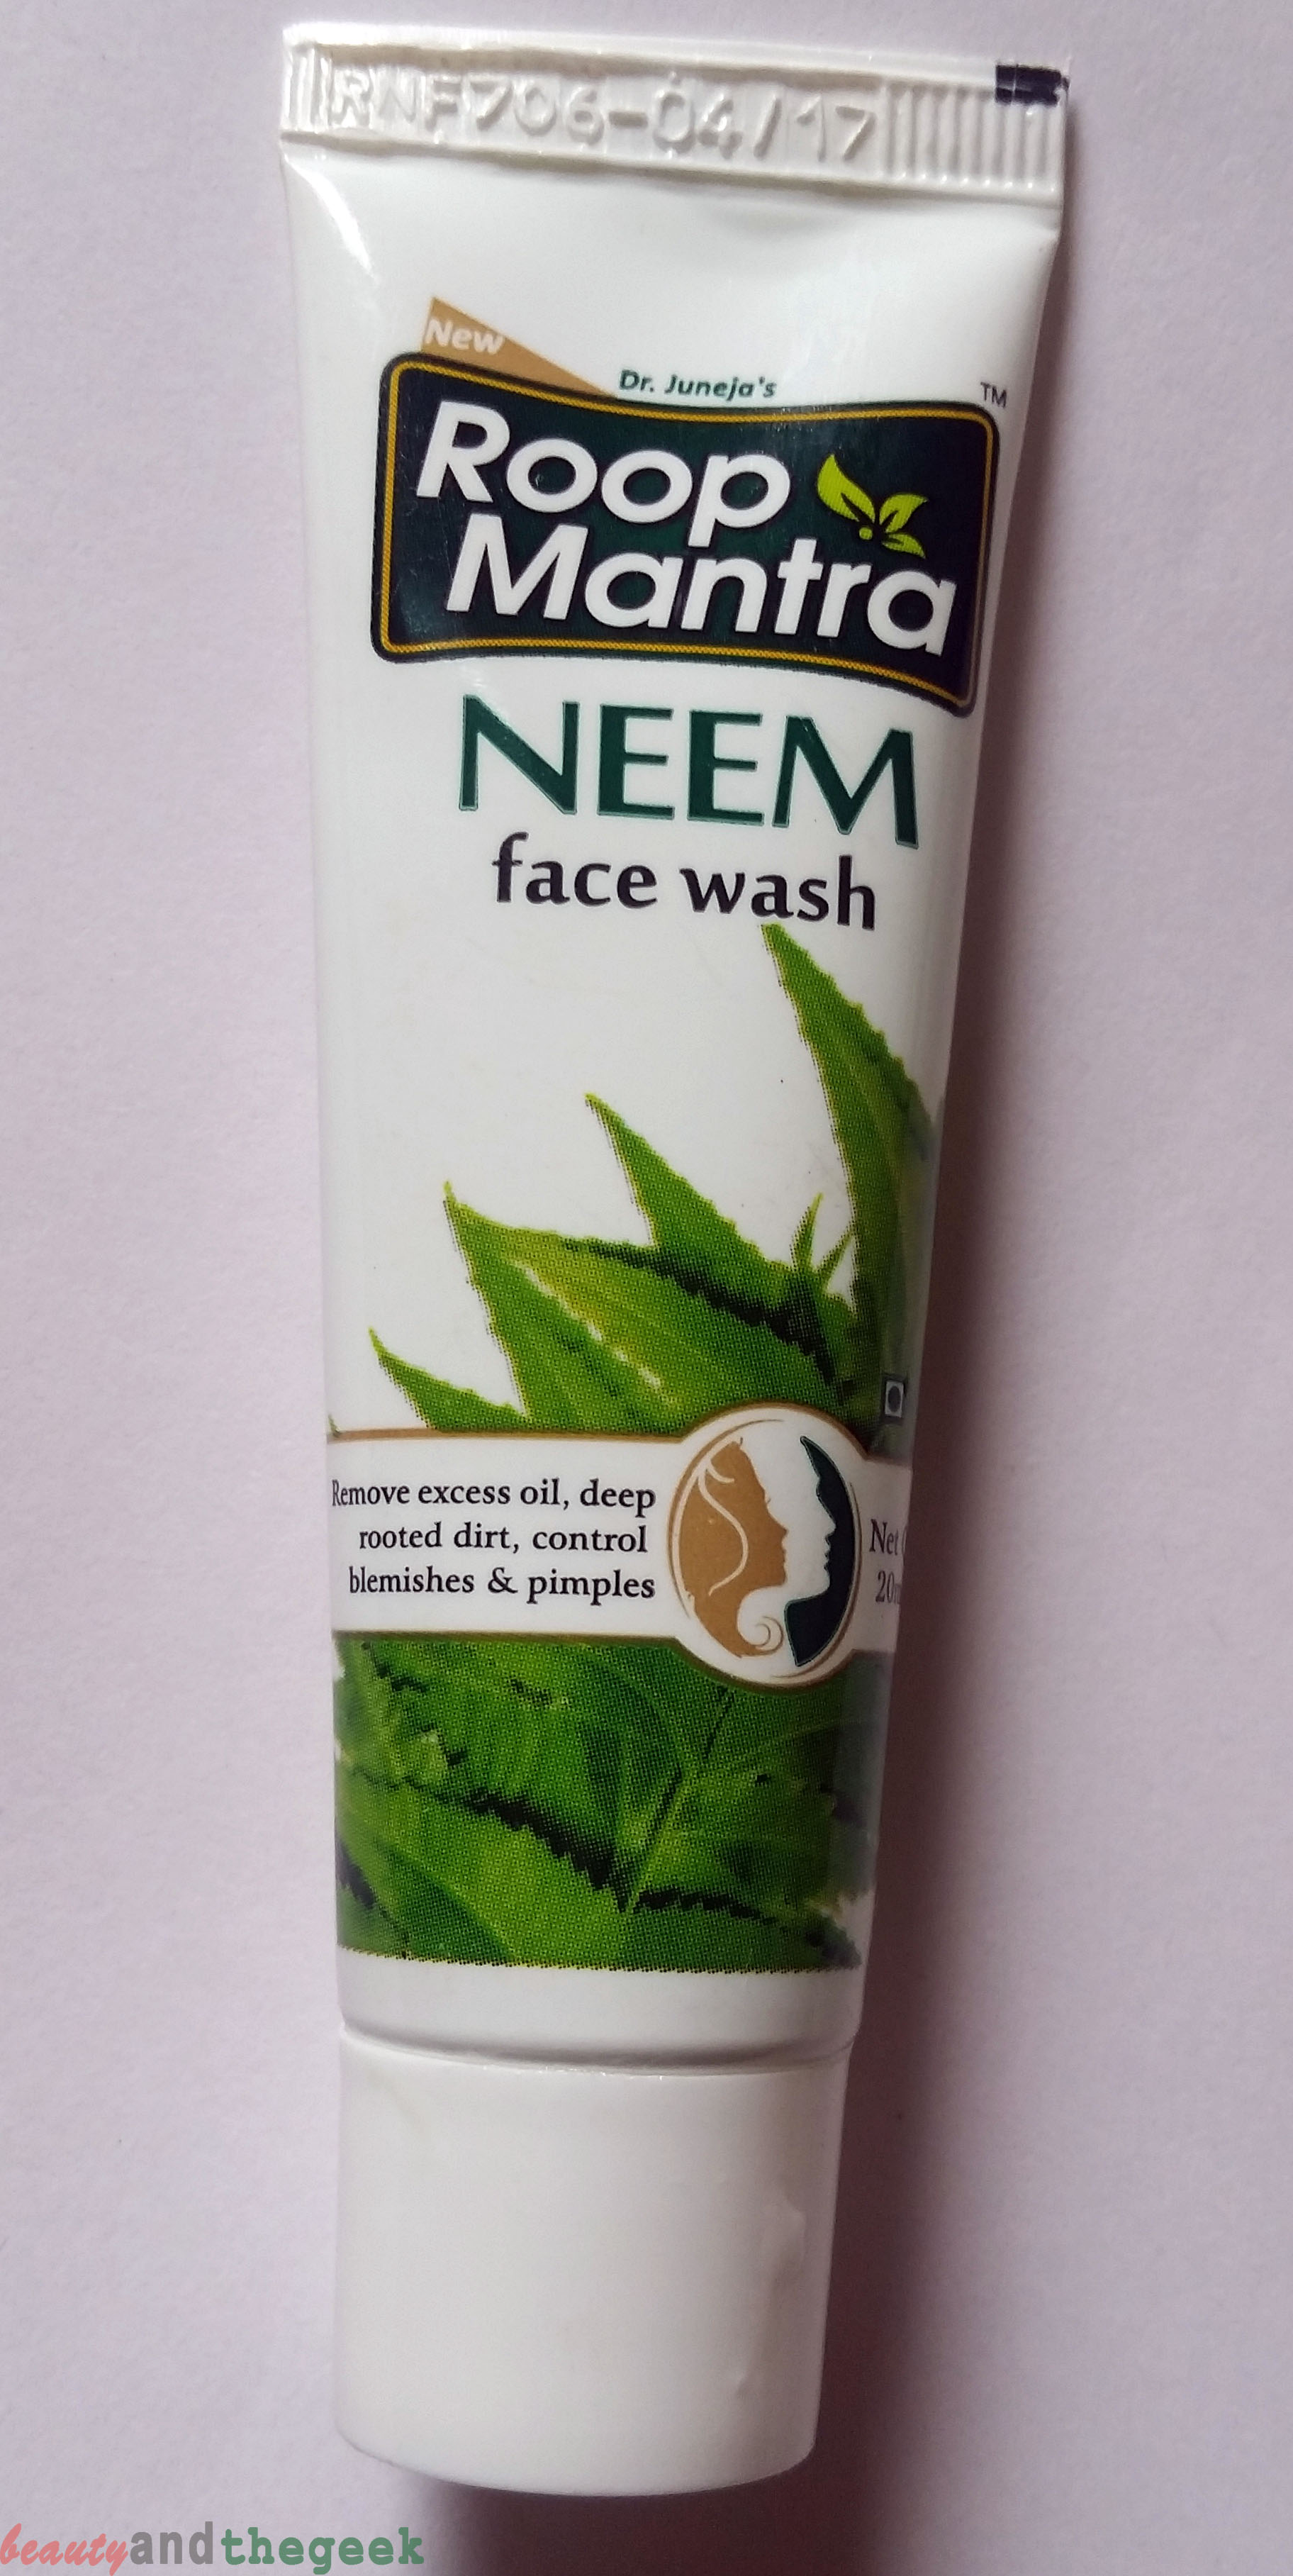 Roop Mantra Neem Face wash